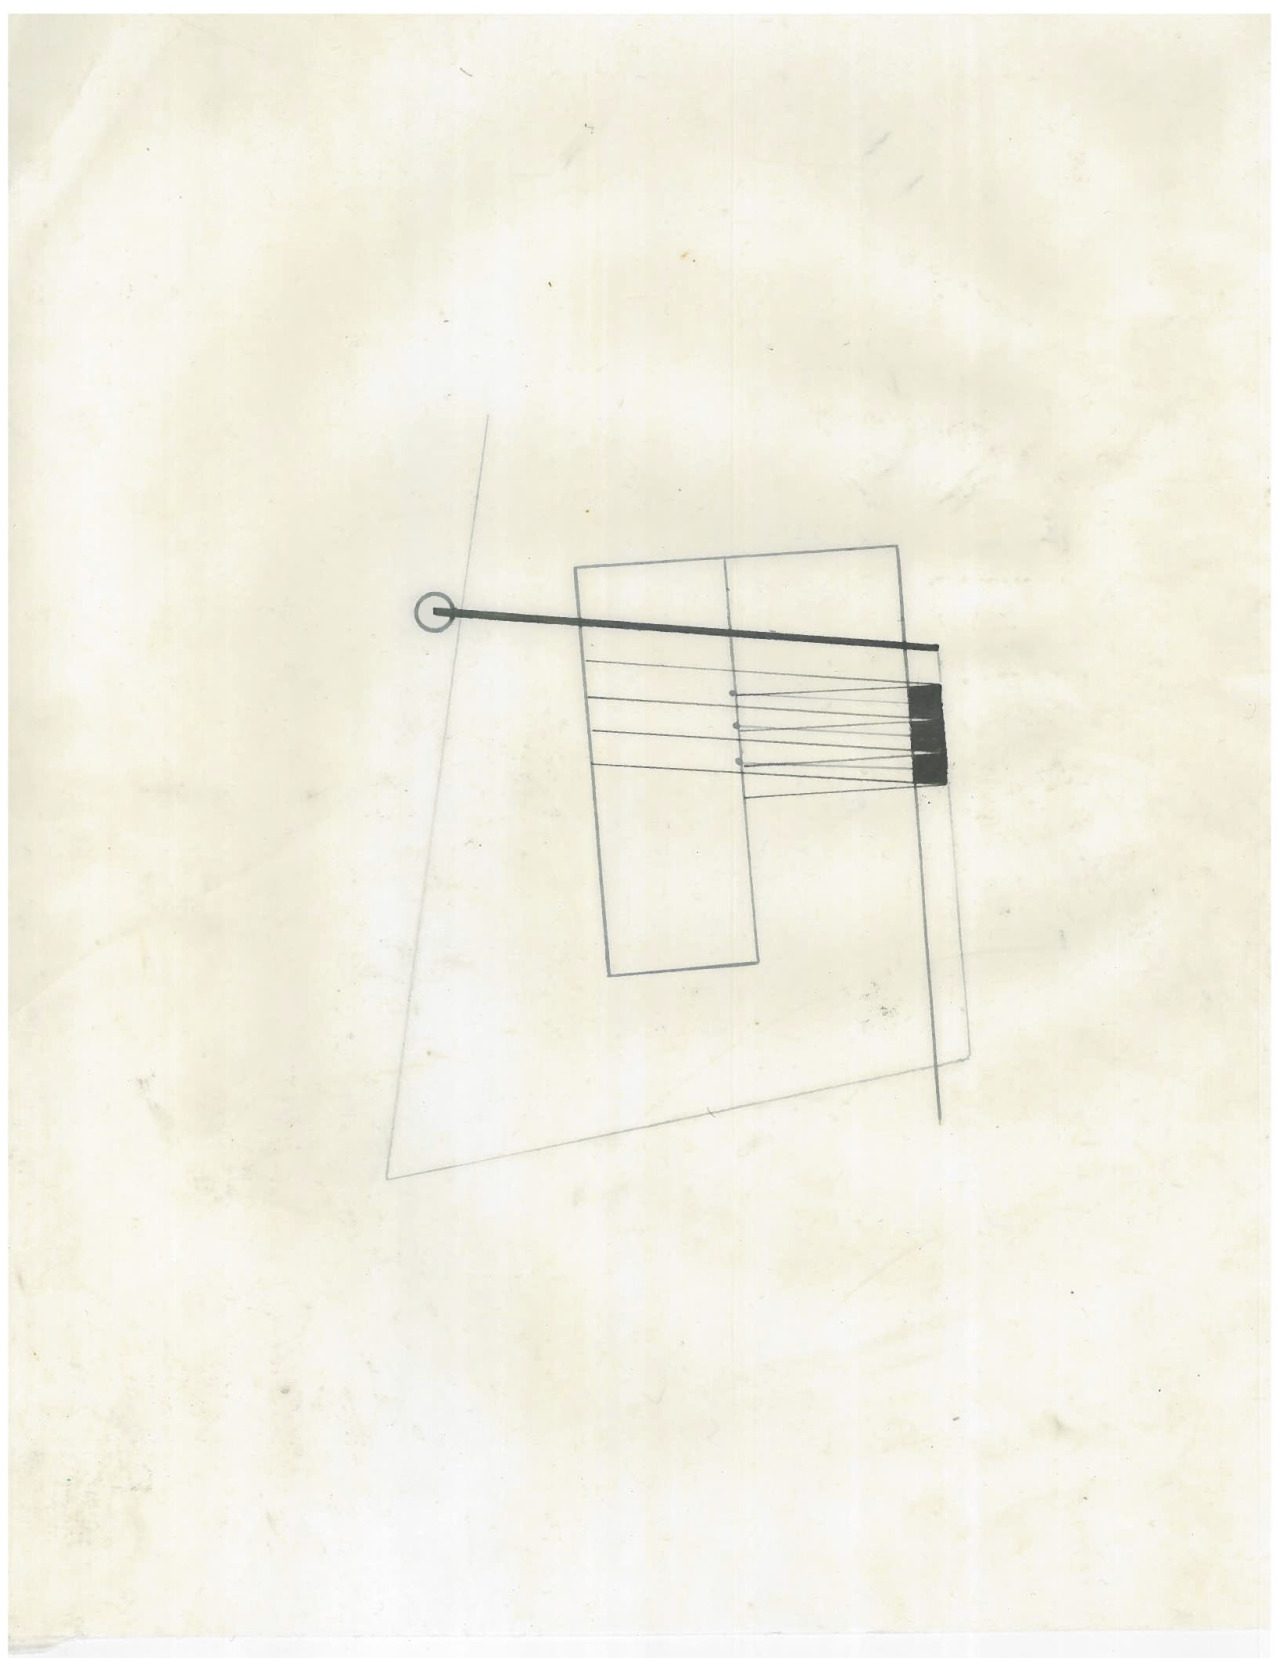 Untitled (the city, observations 17A)  Pencil on oiled fabriano paper  279mm x 216mm  December 2013